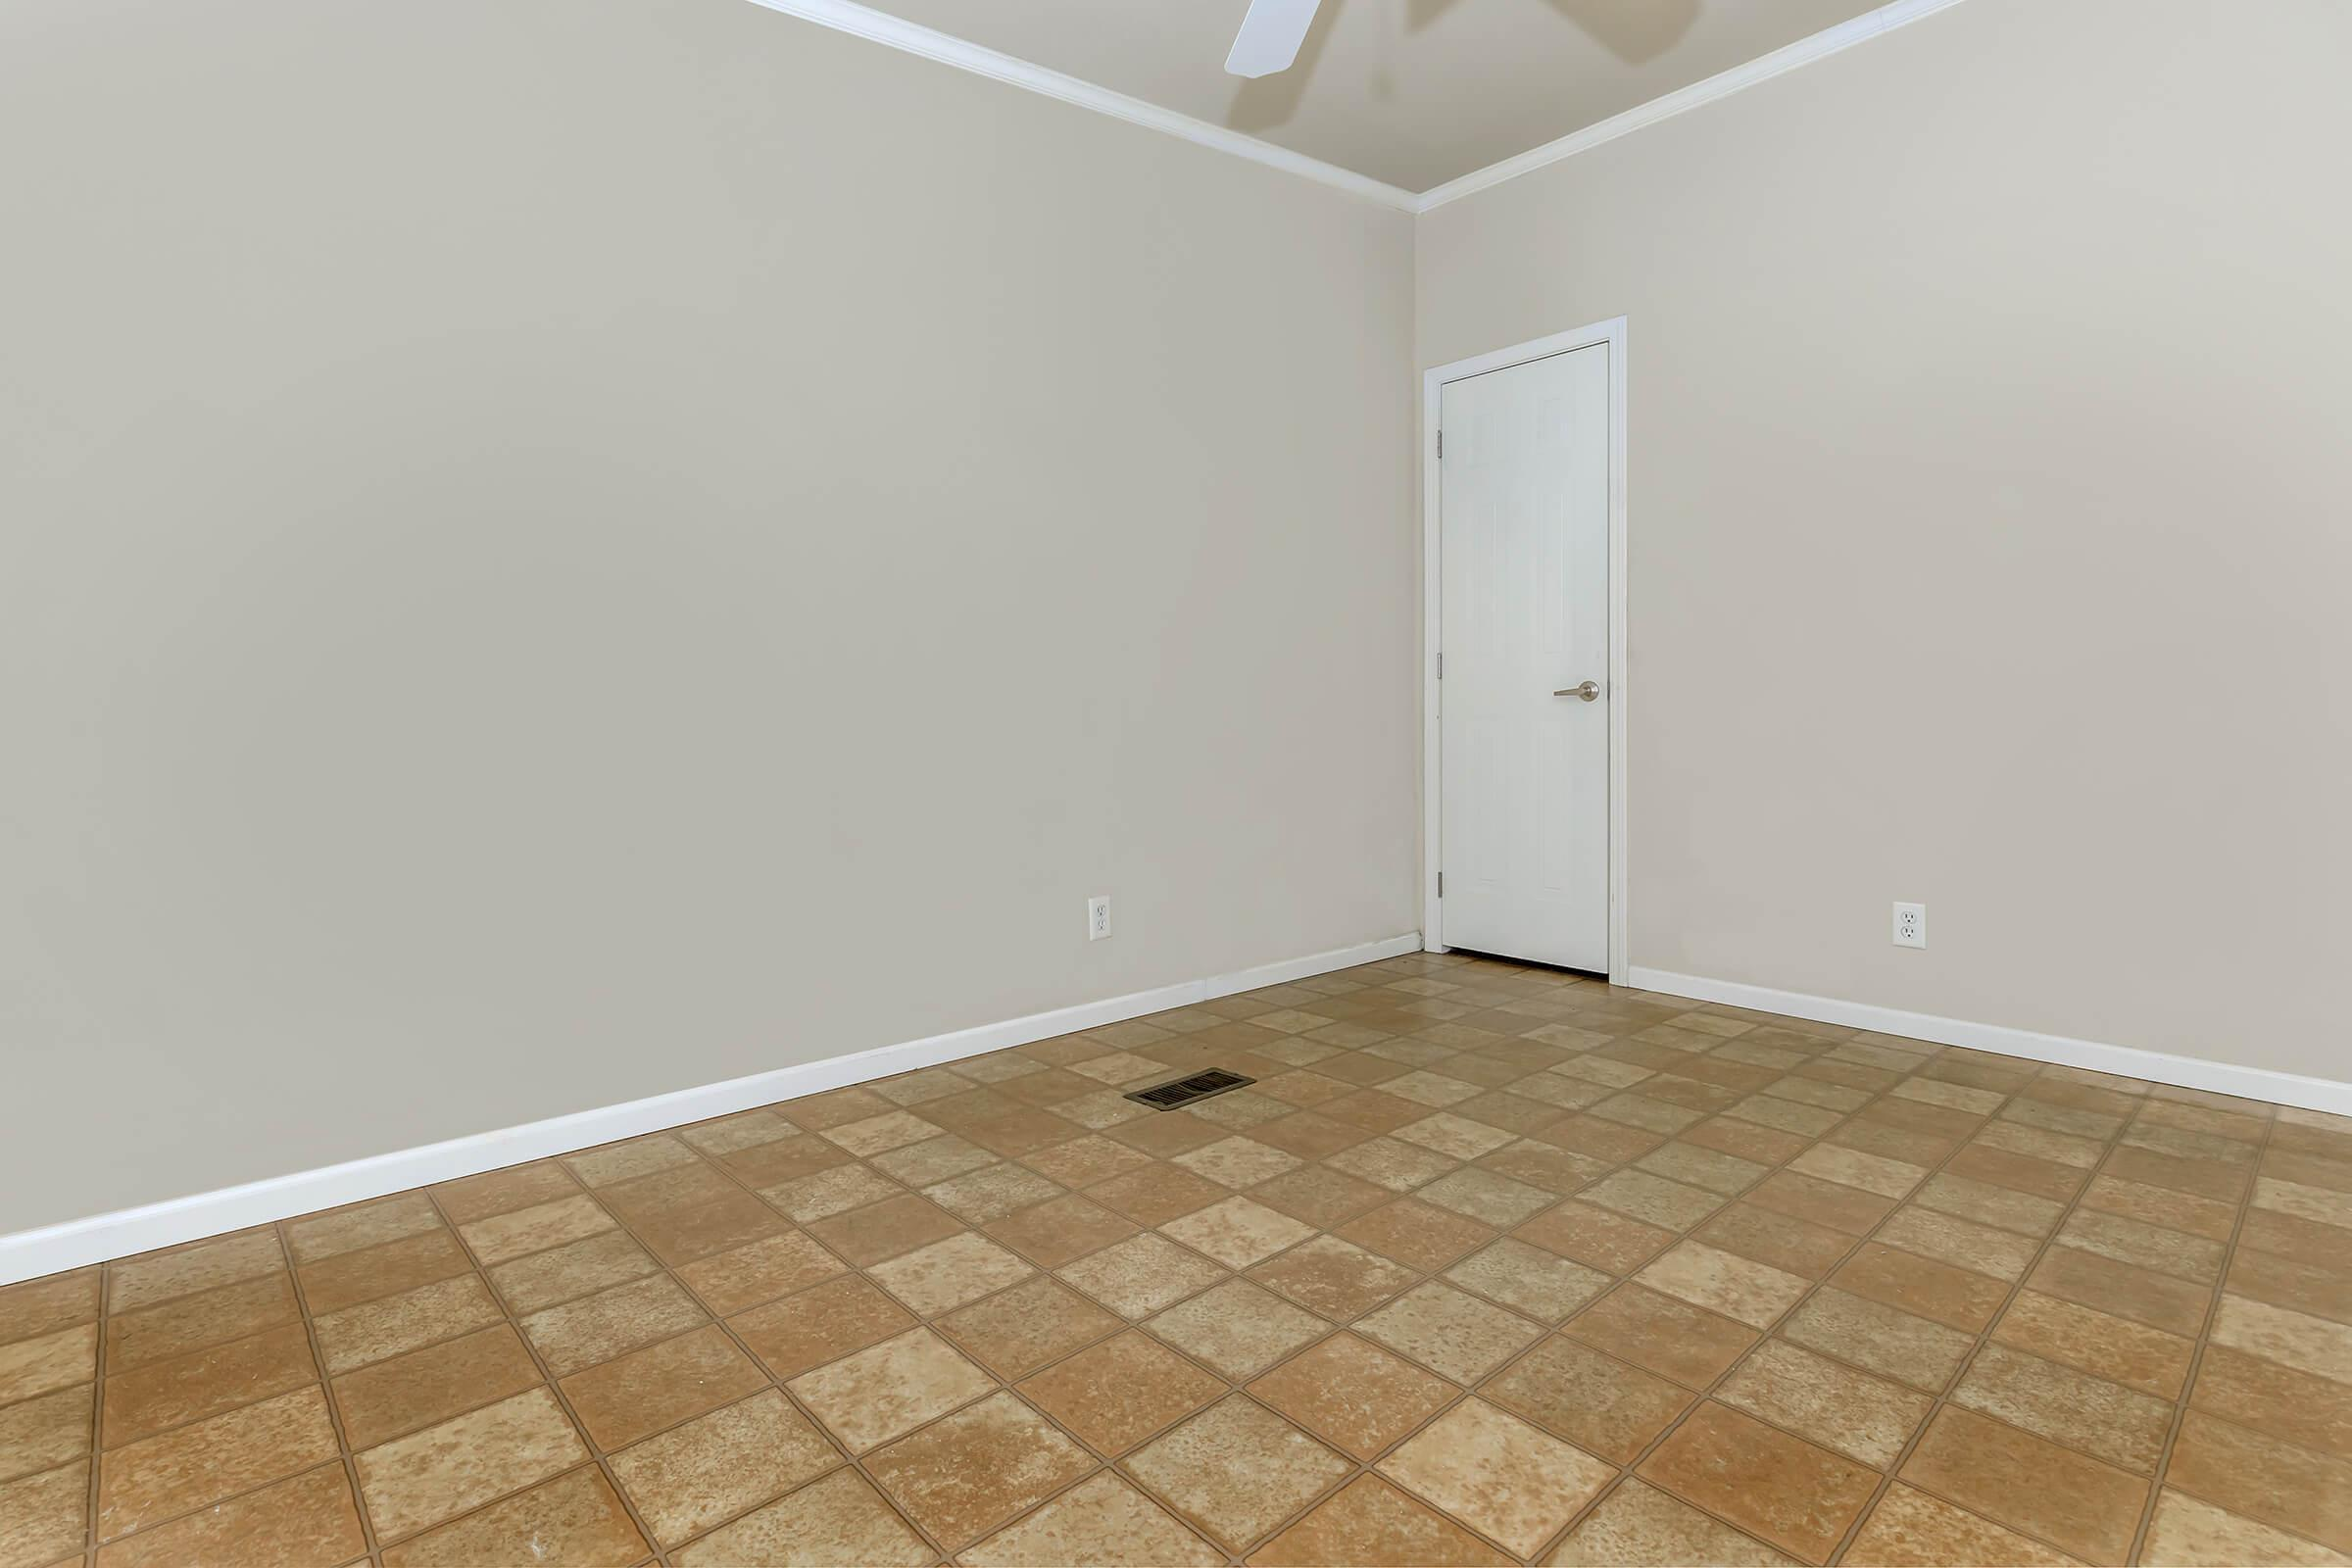 a white tile floor